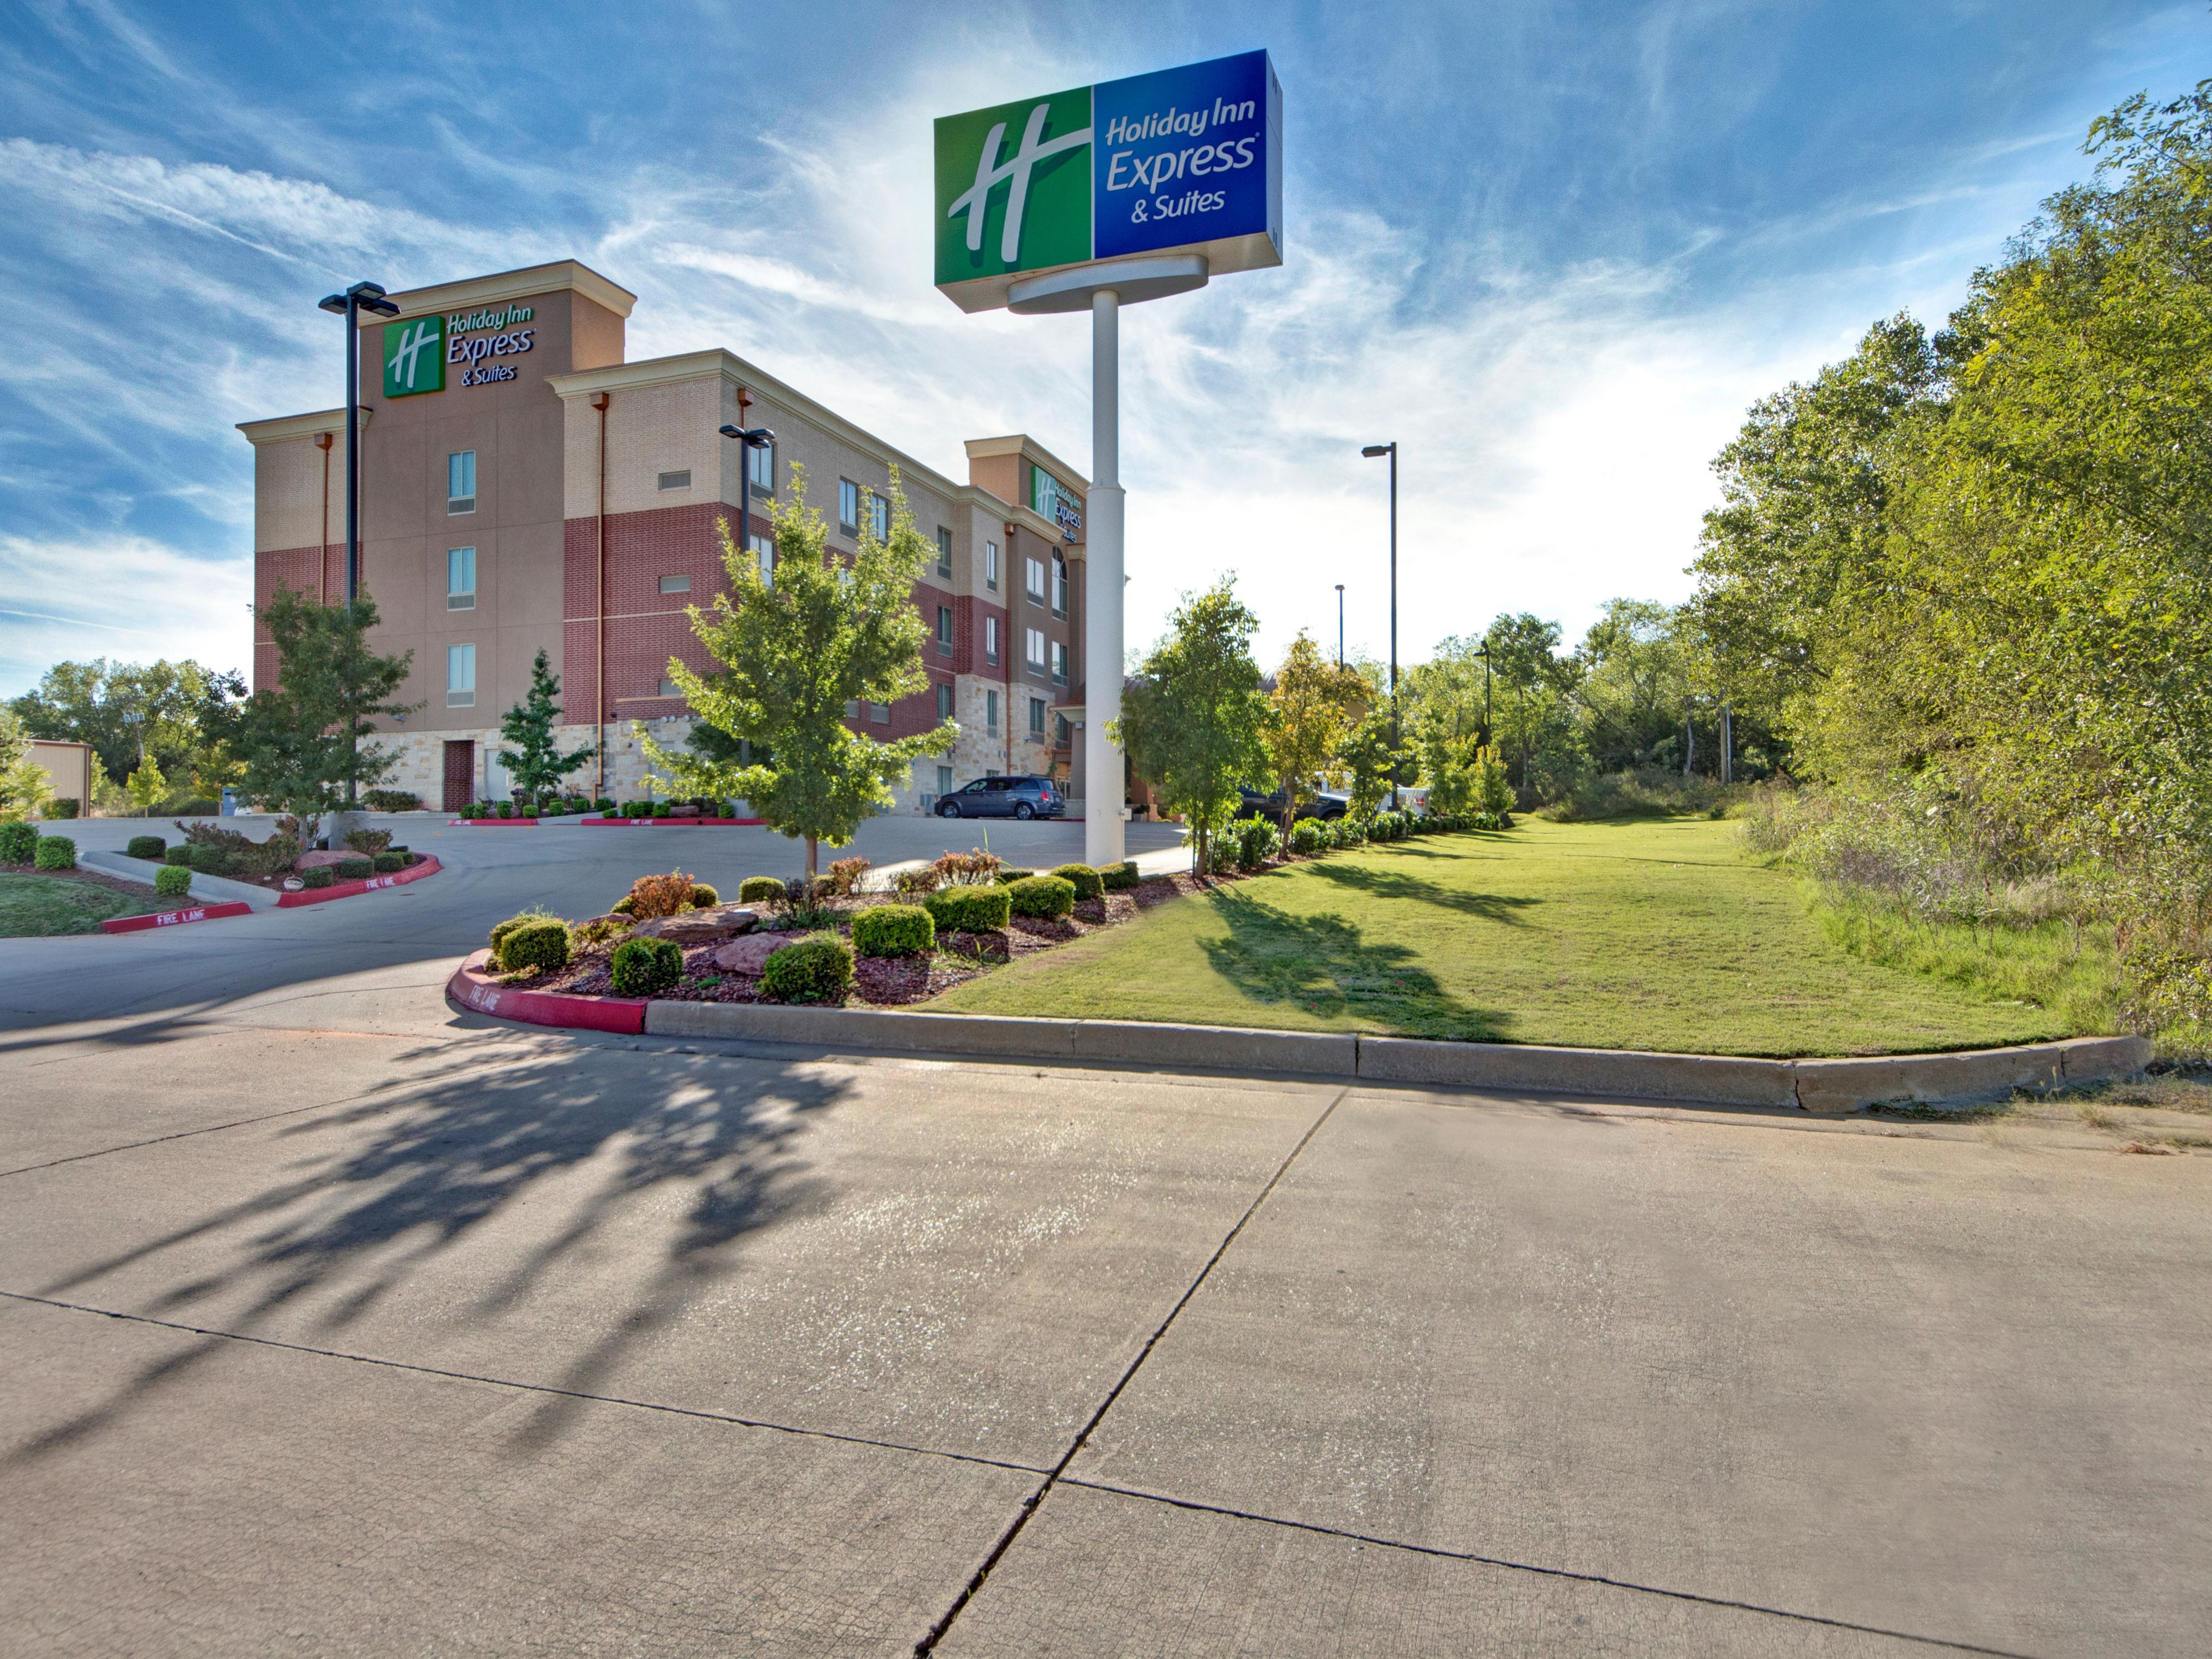 Holiday Inn Hotel And Suites Oklahoma City